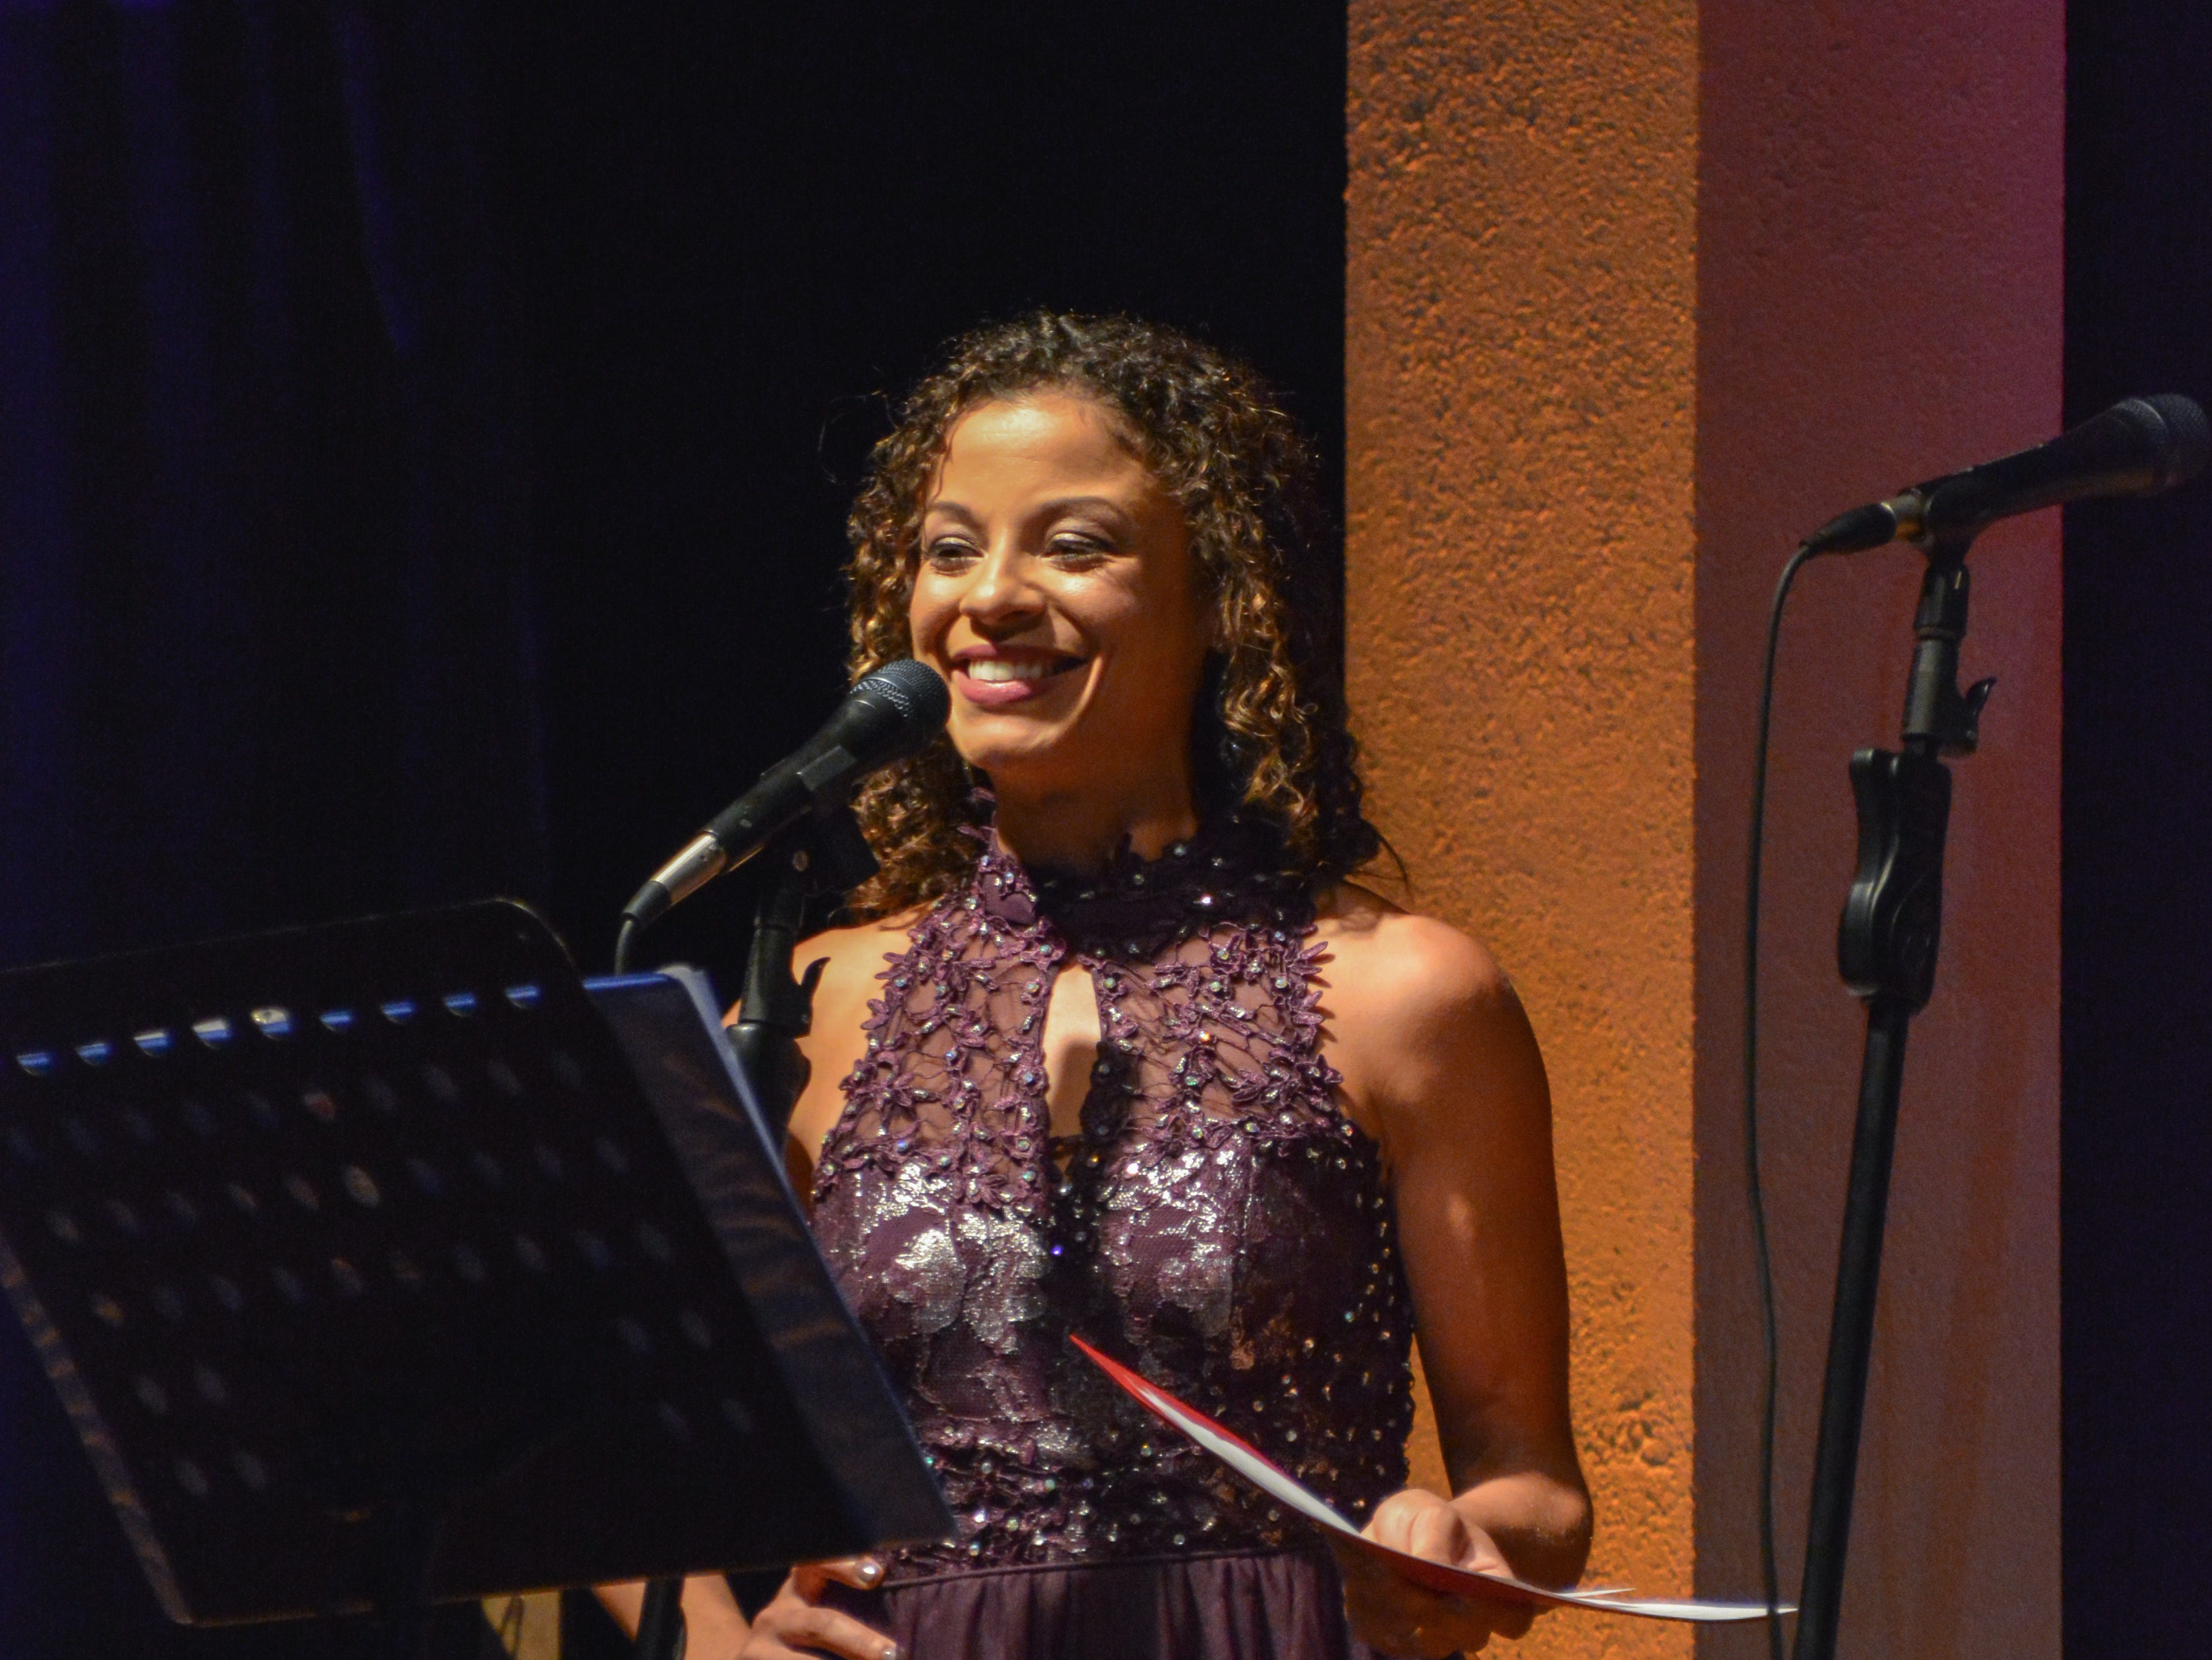 """Vira Ogburn, president of Minds in Motion Children's Museum, speaks at the Minds in Motion Museum """"A Wonderland Adventure"""" gala, on Nov. 3, 2018 at the Wicomico Youth & Civic Center."""